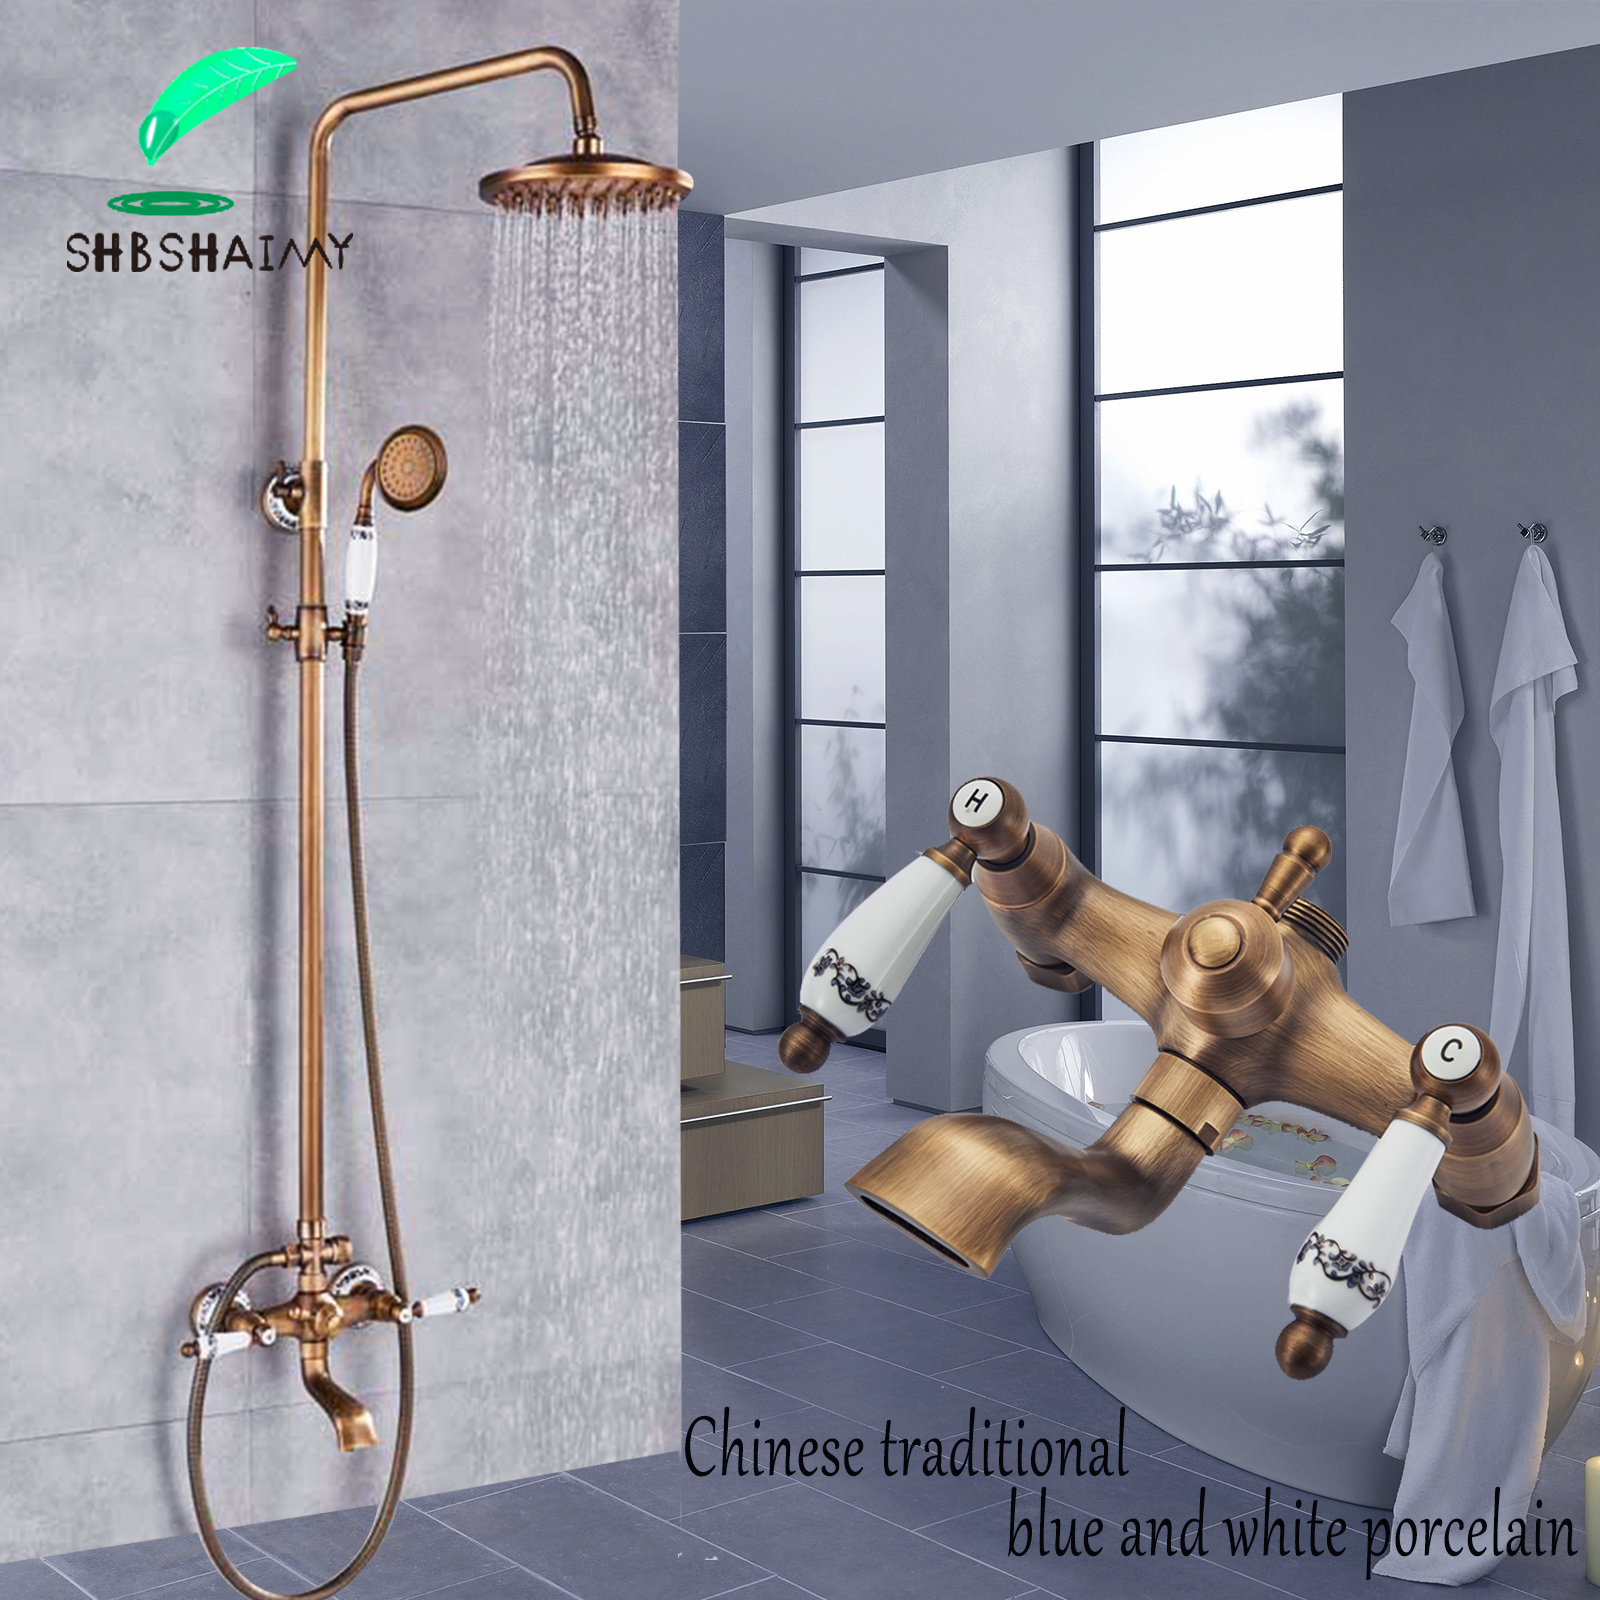 Shbshaimy Antique Brass Bathroom Bathtub Shower Set Faucet